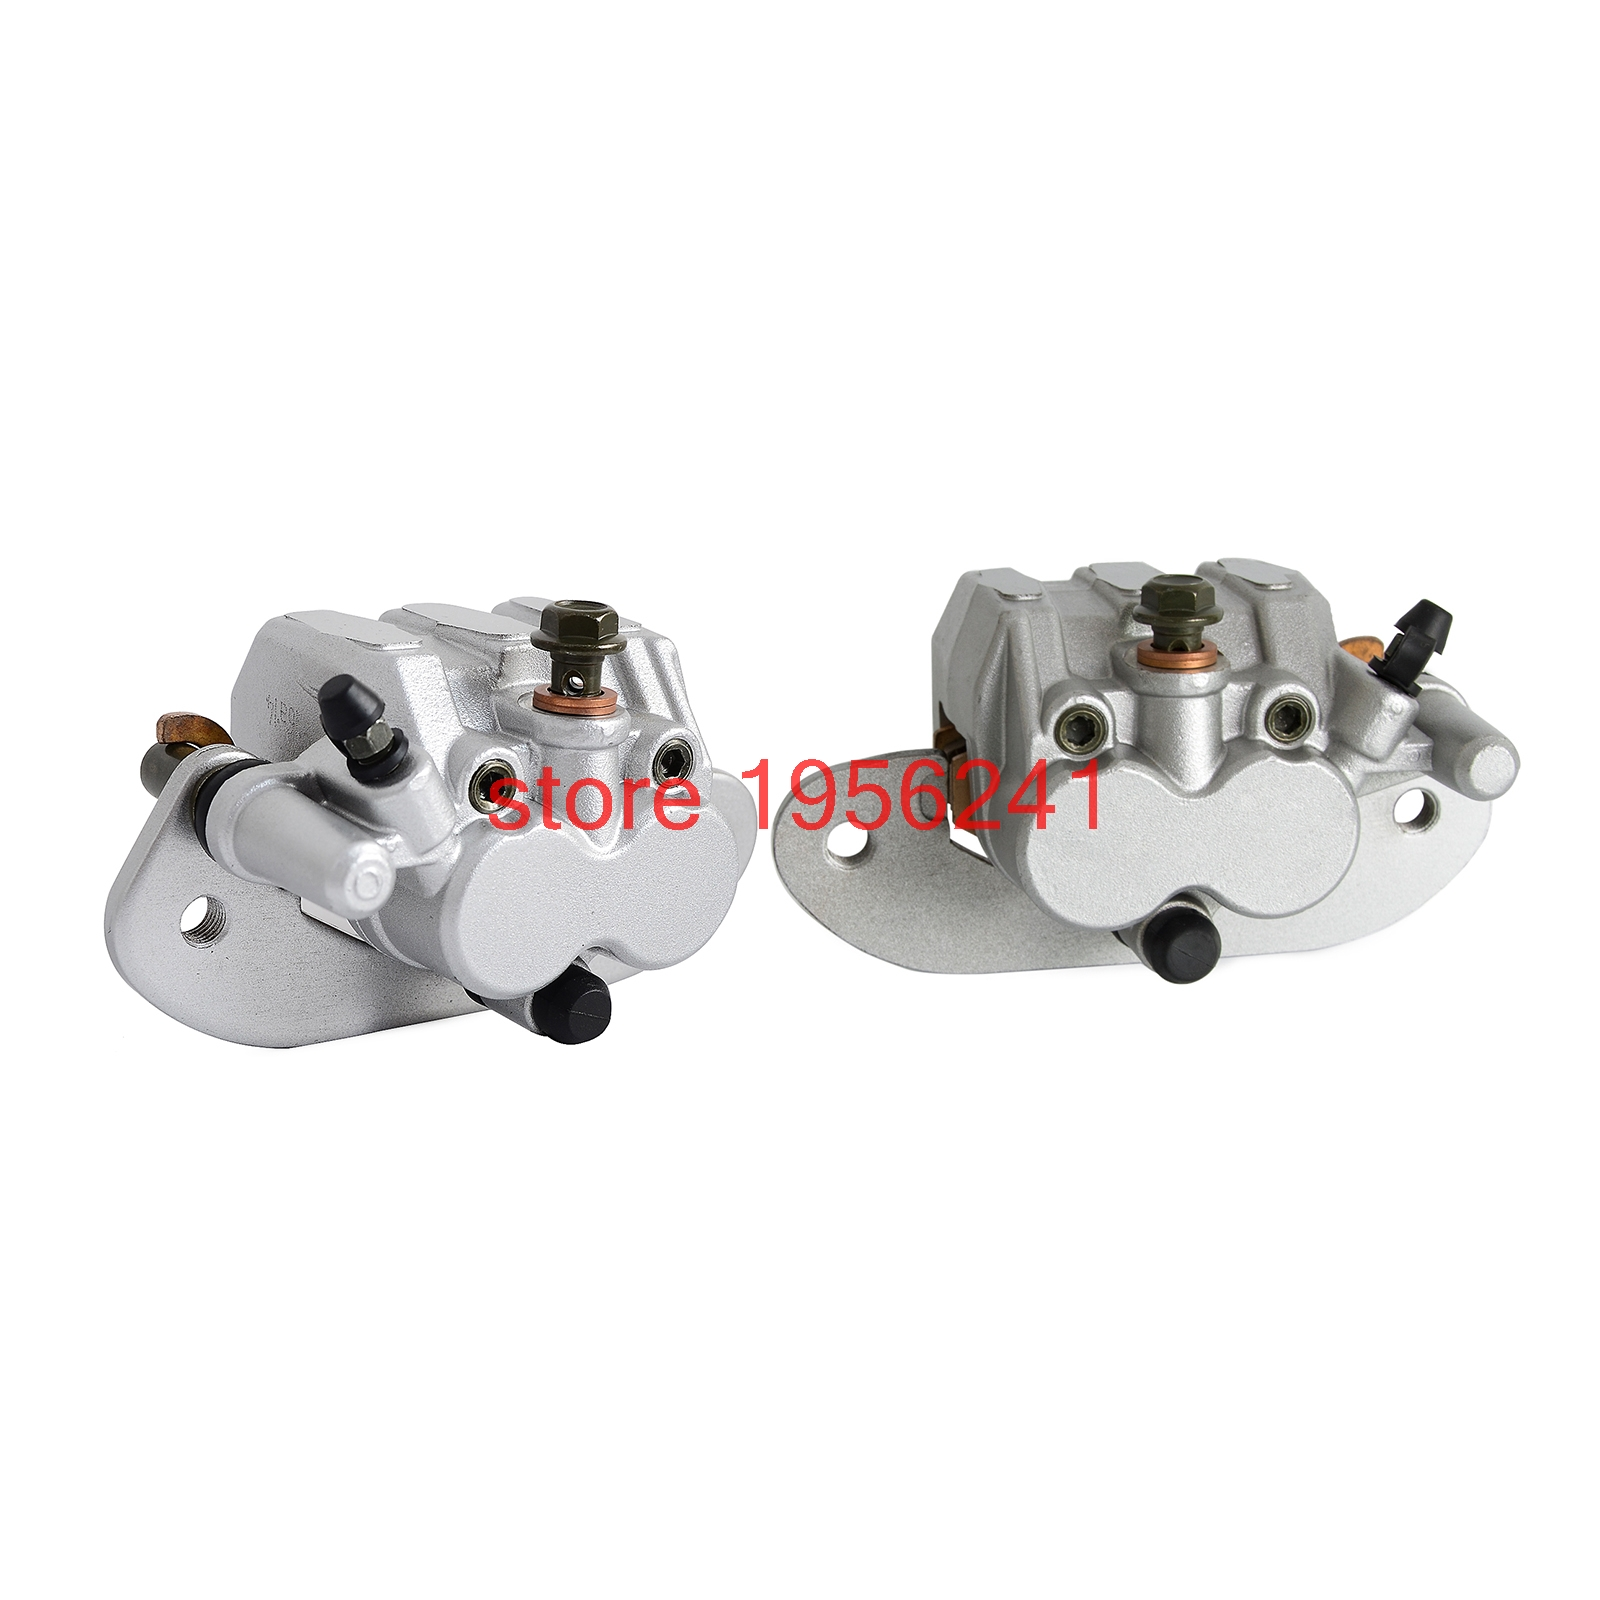 Rear Left & Right Brake Caliper Set With Pads For Yamaha UTV Rhino 700 2008 - 2013 2009 2010 2011 2012 NEW car rear trunk security shield shade cargo cover for nissan qashqai 2008 2009 2010 2011 2012 2013 black beige